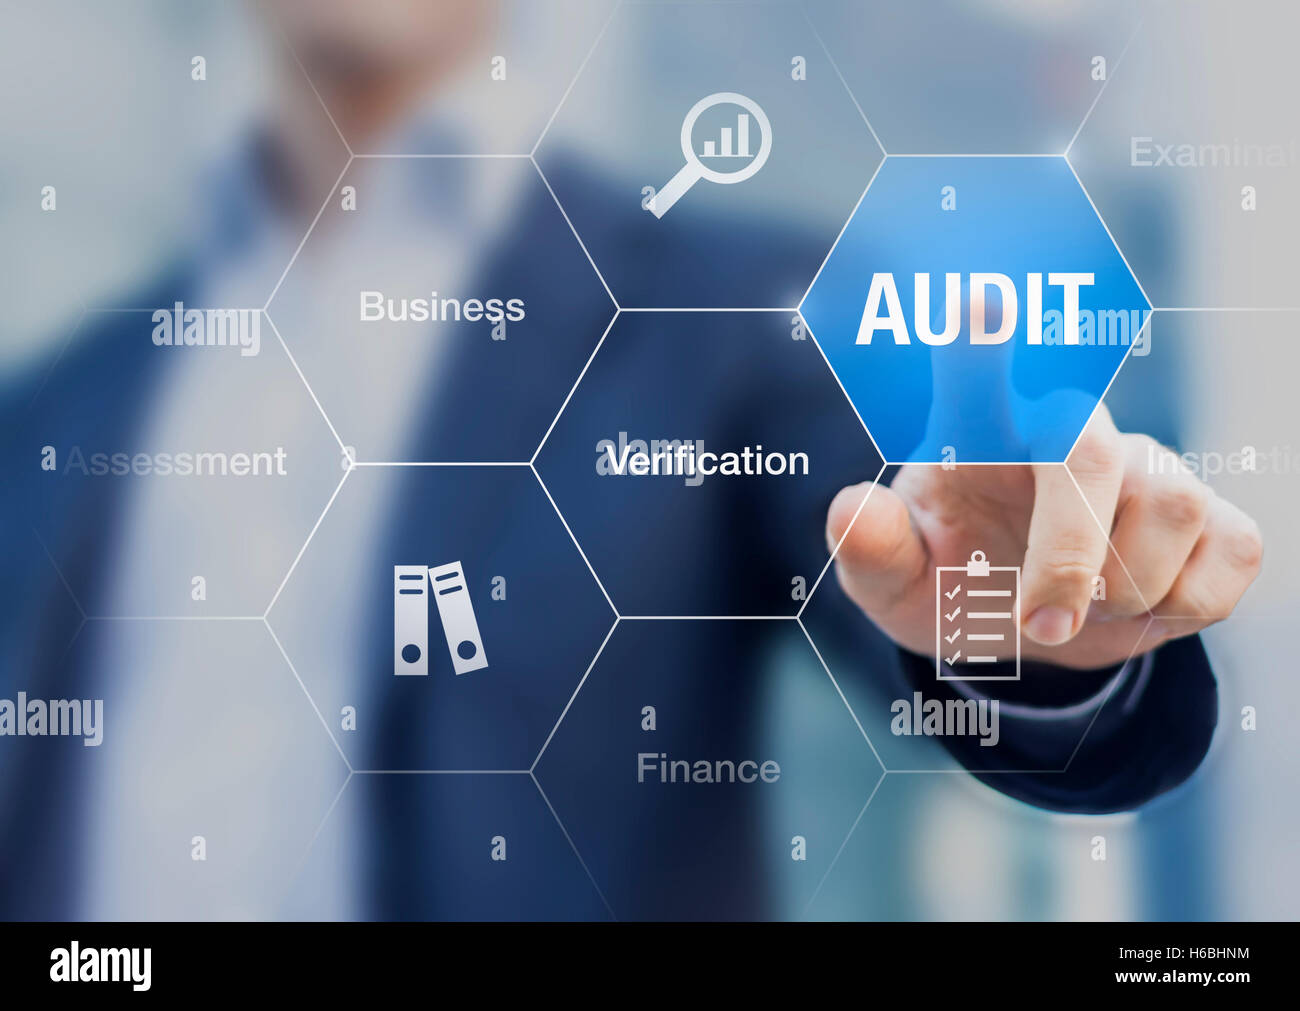 Concept about financial audit to verify the quality of accounting in businesses with auditor in background - Stock Image